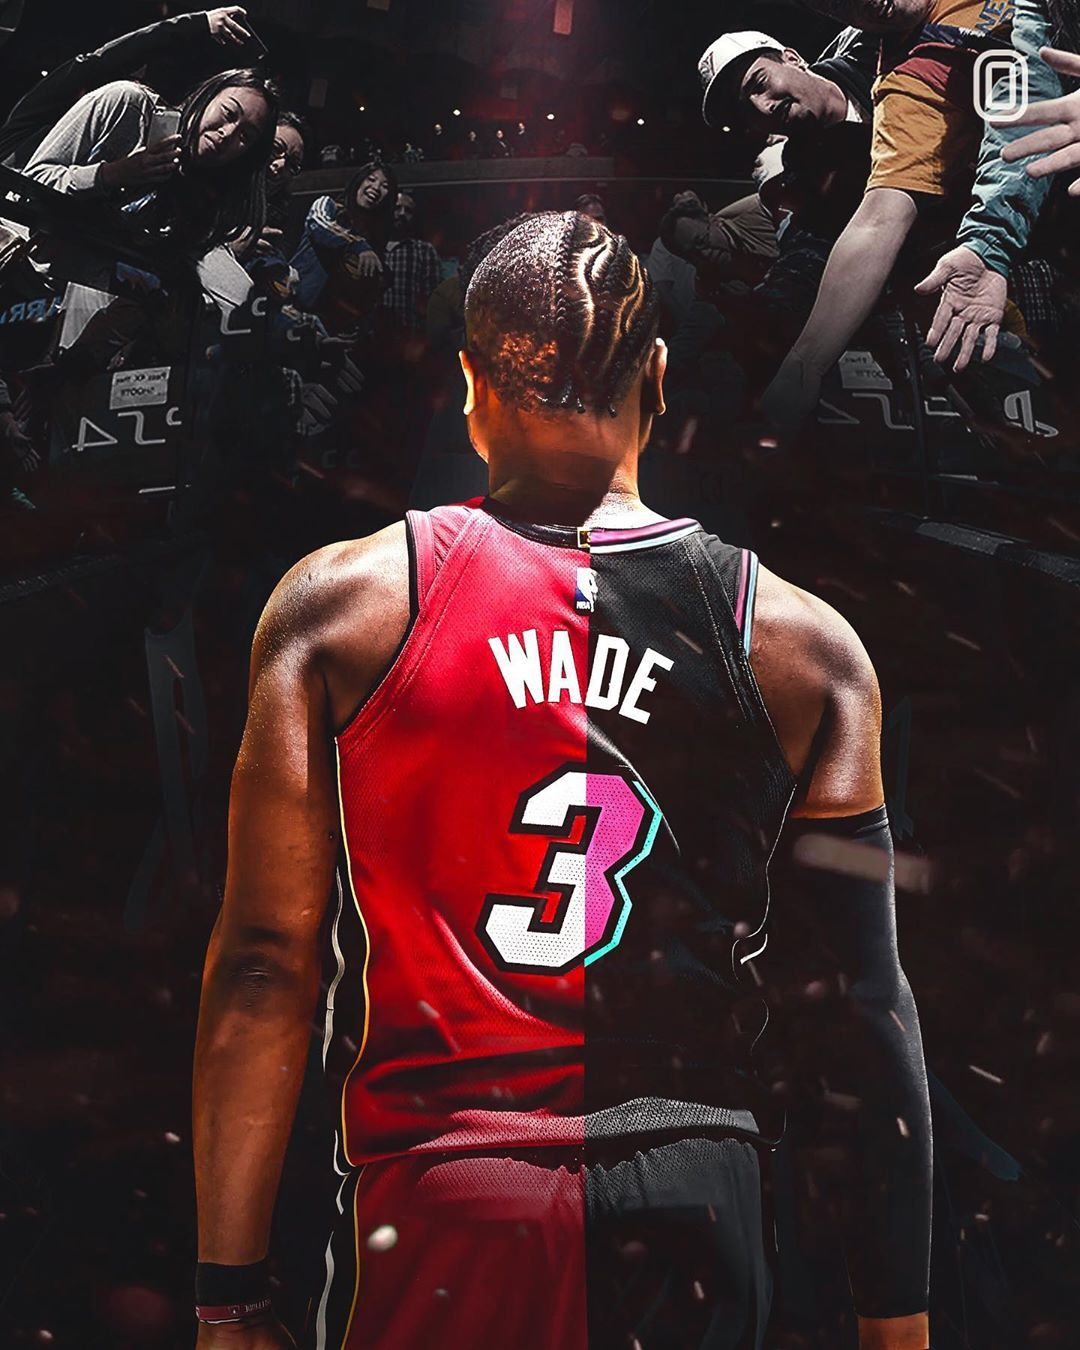 Overtime Edits On Instagram Legends Are Forever Dwyanewade Throwback In 2020 Nba Basketball Art Nba Mvp Basketball Players Nba